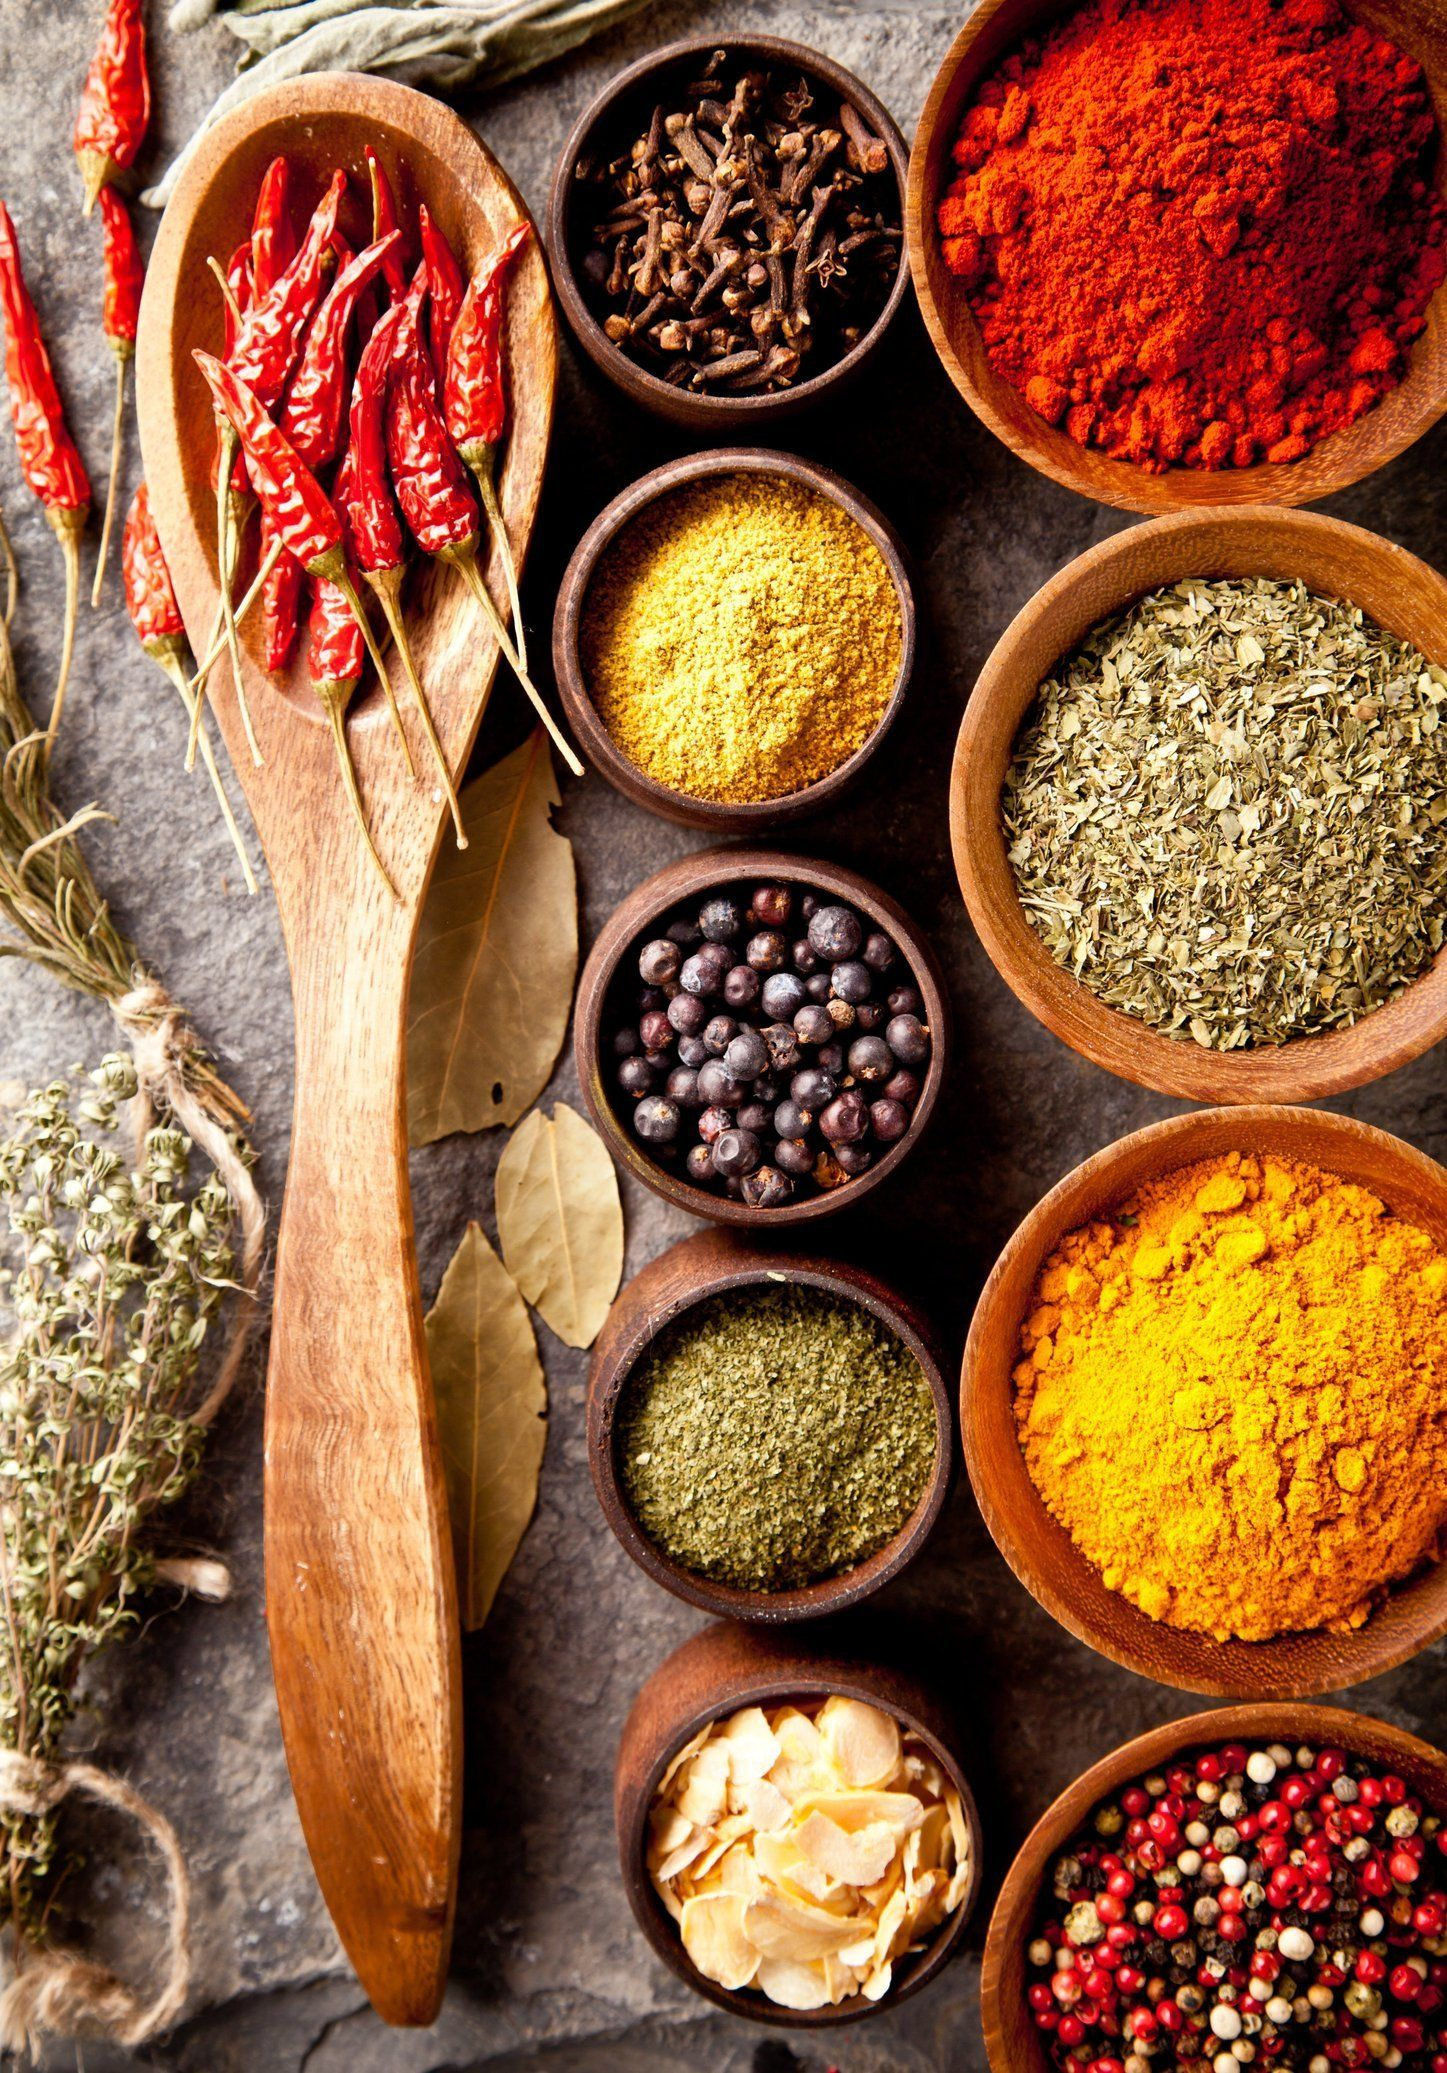 Cuisine Spicy Best 25 43 Common Spices Ideas On Pinterest East To East